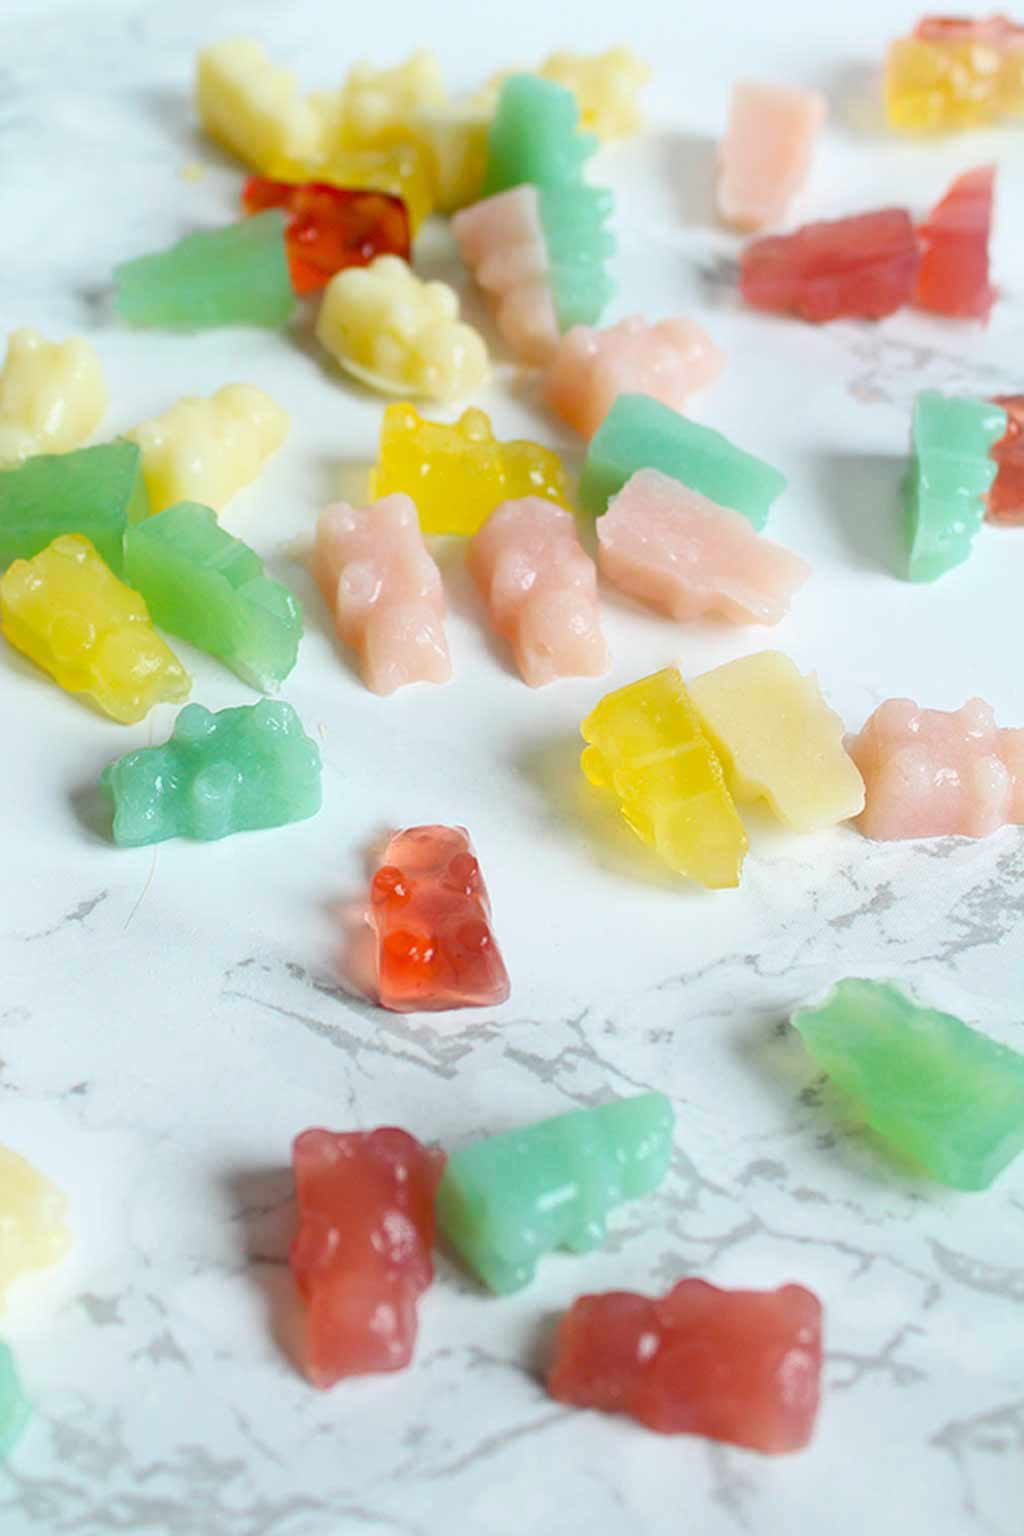 vegan gummy bears scattered on worktop